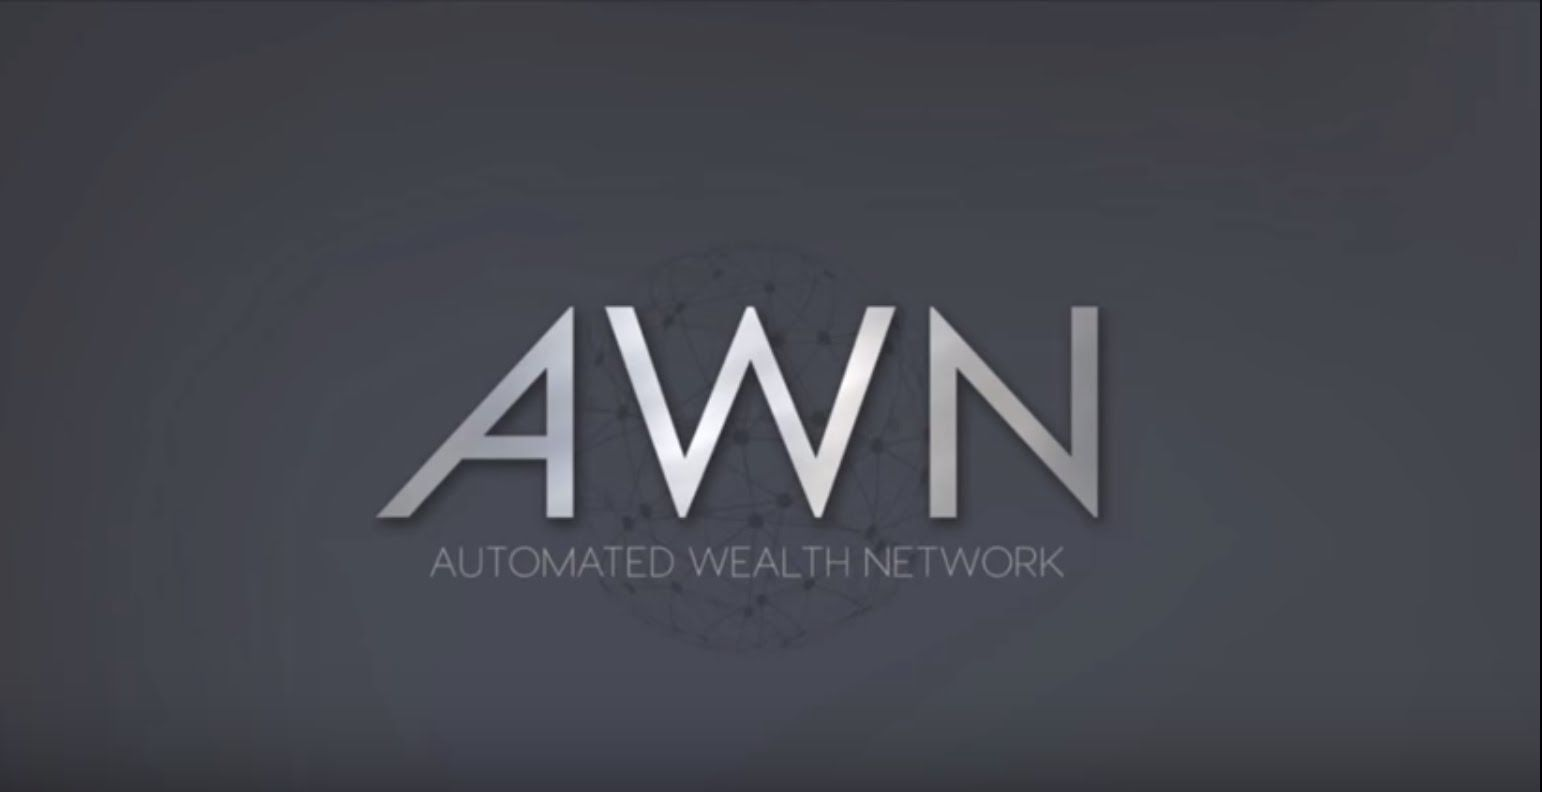 Awn 2 0 Is It Worth The Price Networking Wealth Working From Home